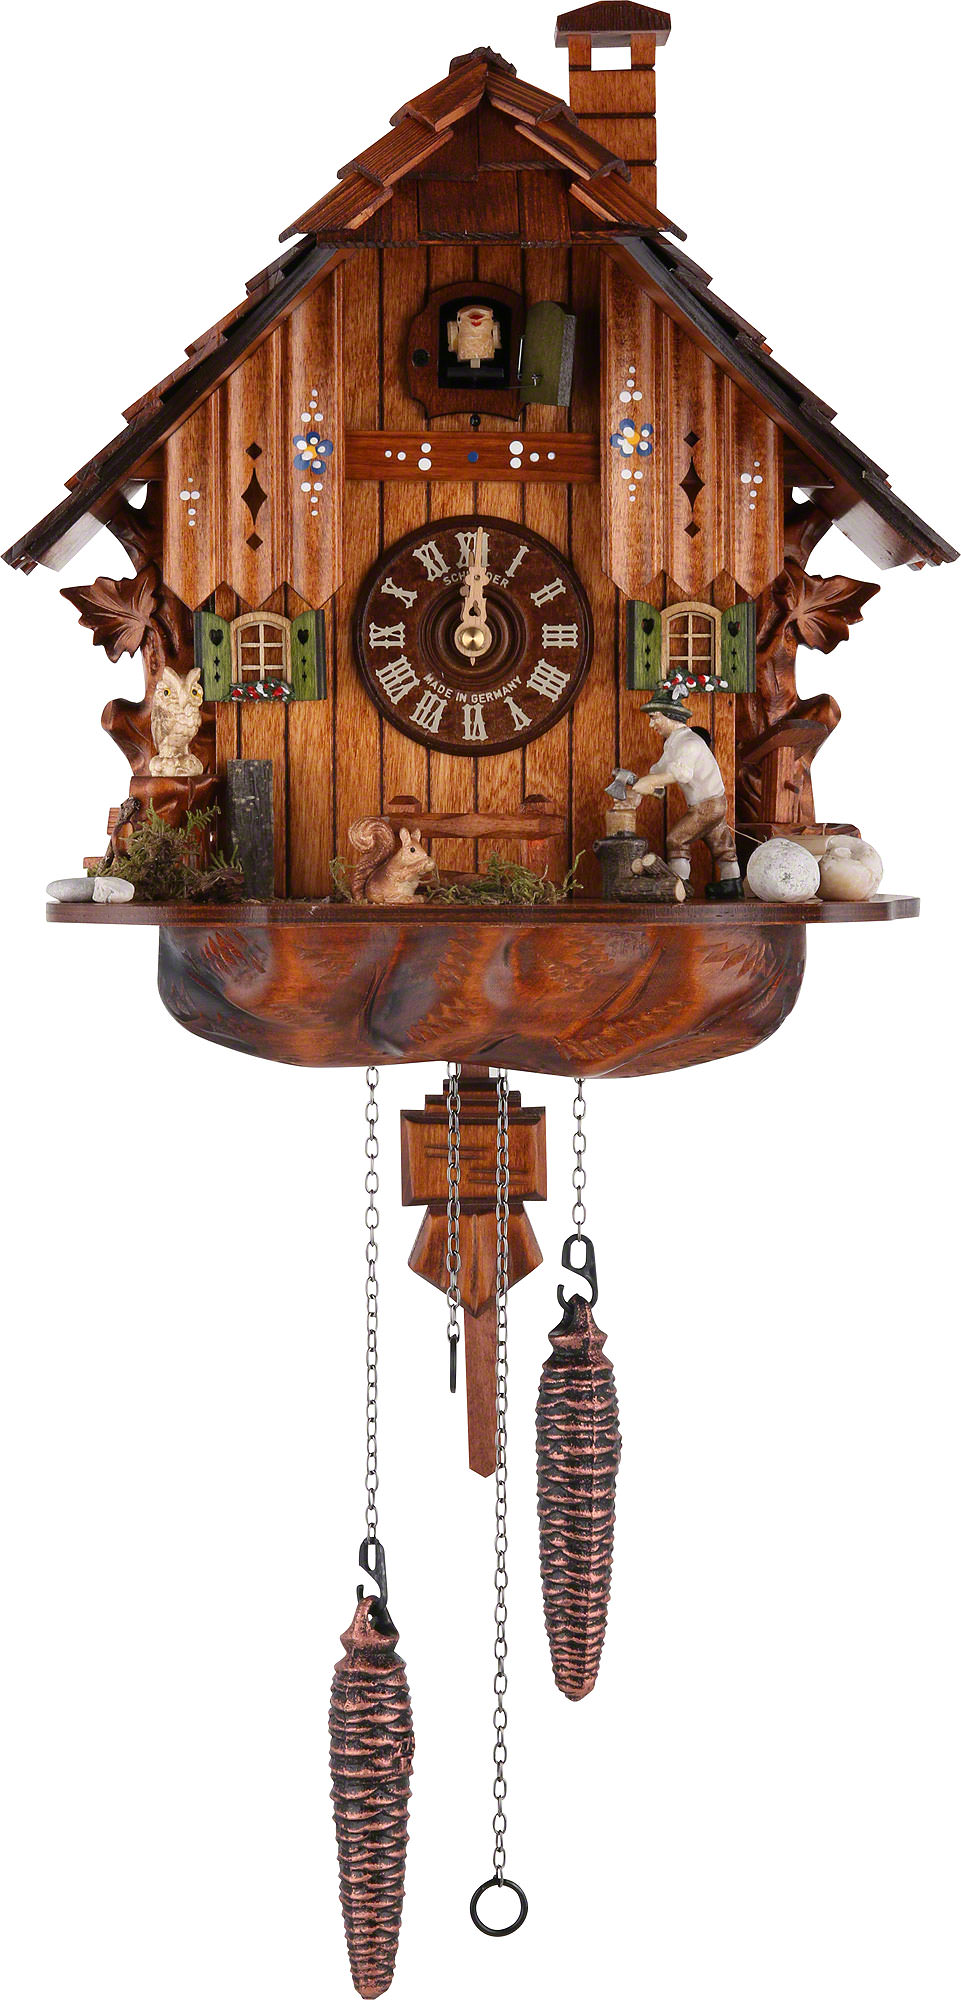 Cuckoo clock quartz movement chalet style 30cm by anton How to make a cuckoo clock